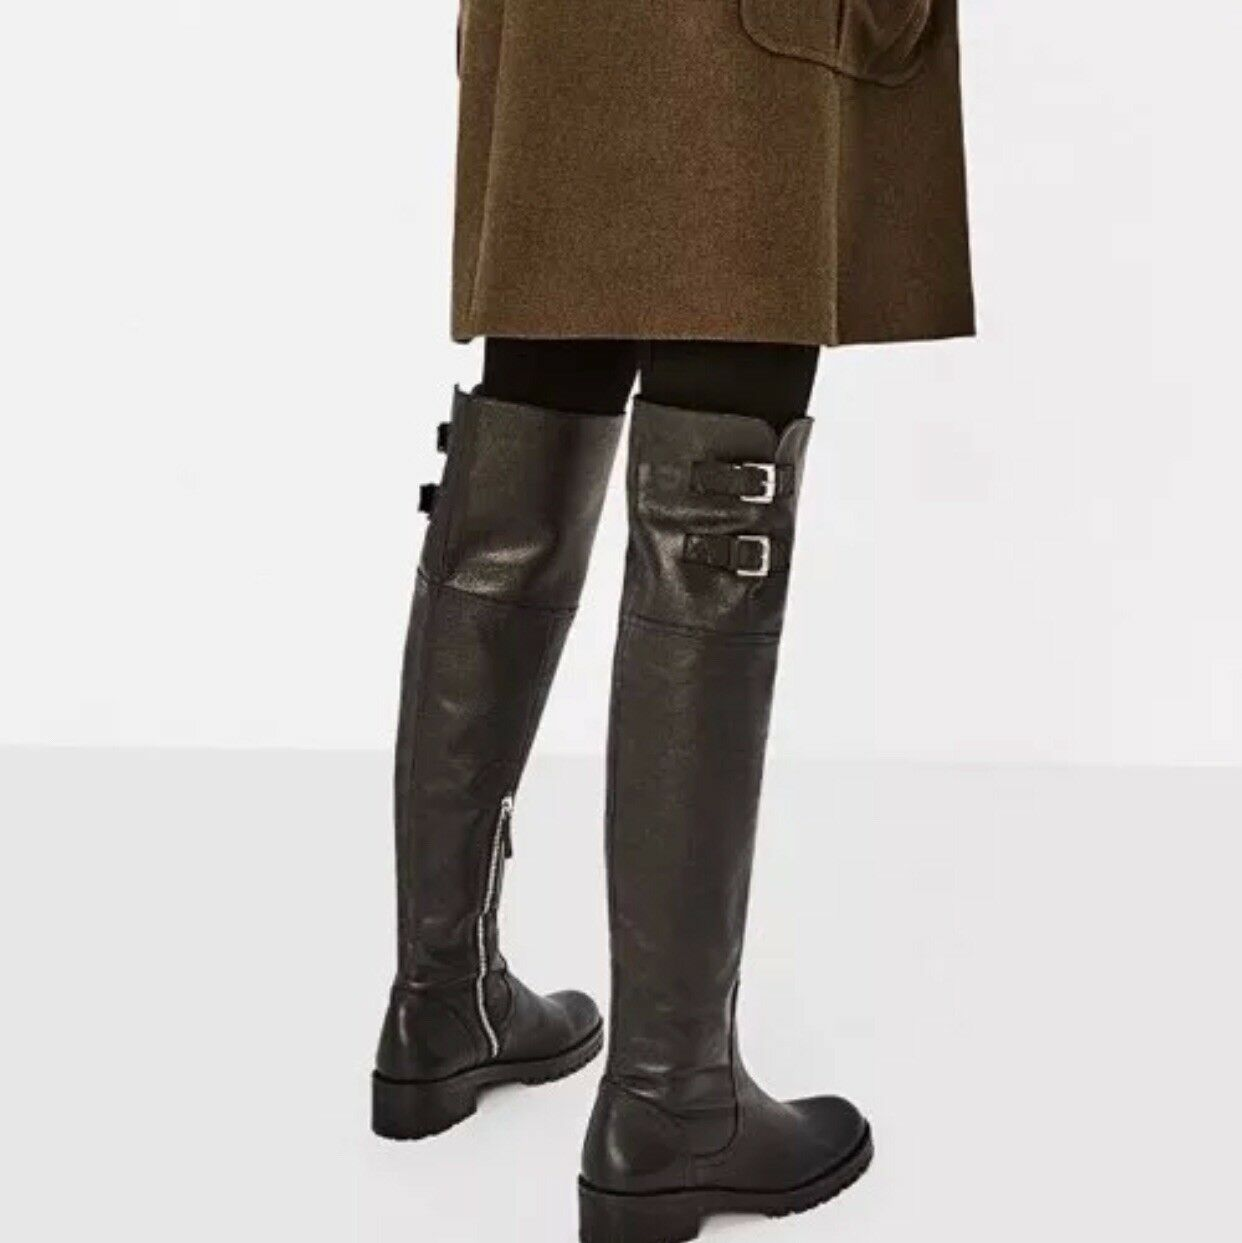 NWT ZARA  179 100% 100% 100% COW LEATHER OVER THE KNEE FLAT bottes ZIP & BUCKLES 6014 101 94b5b1